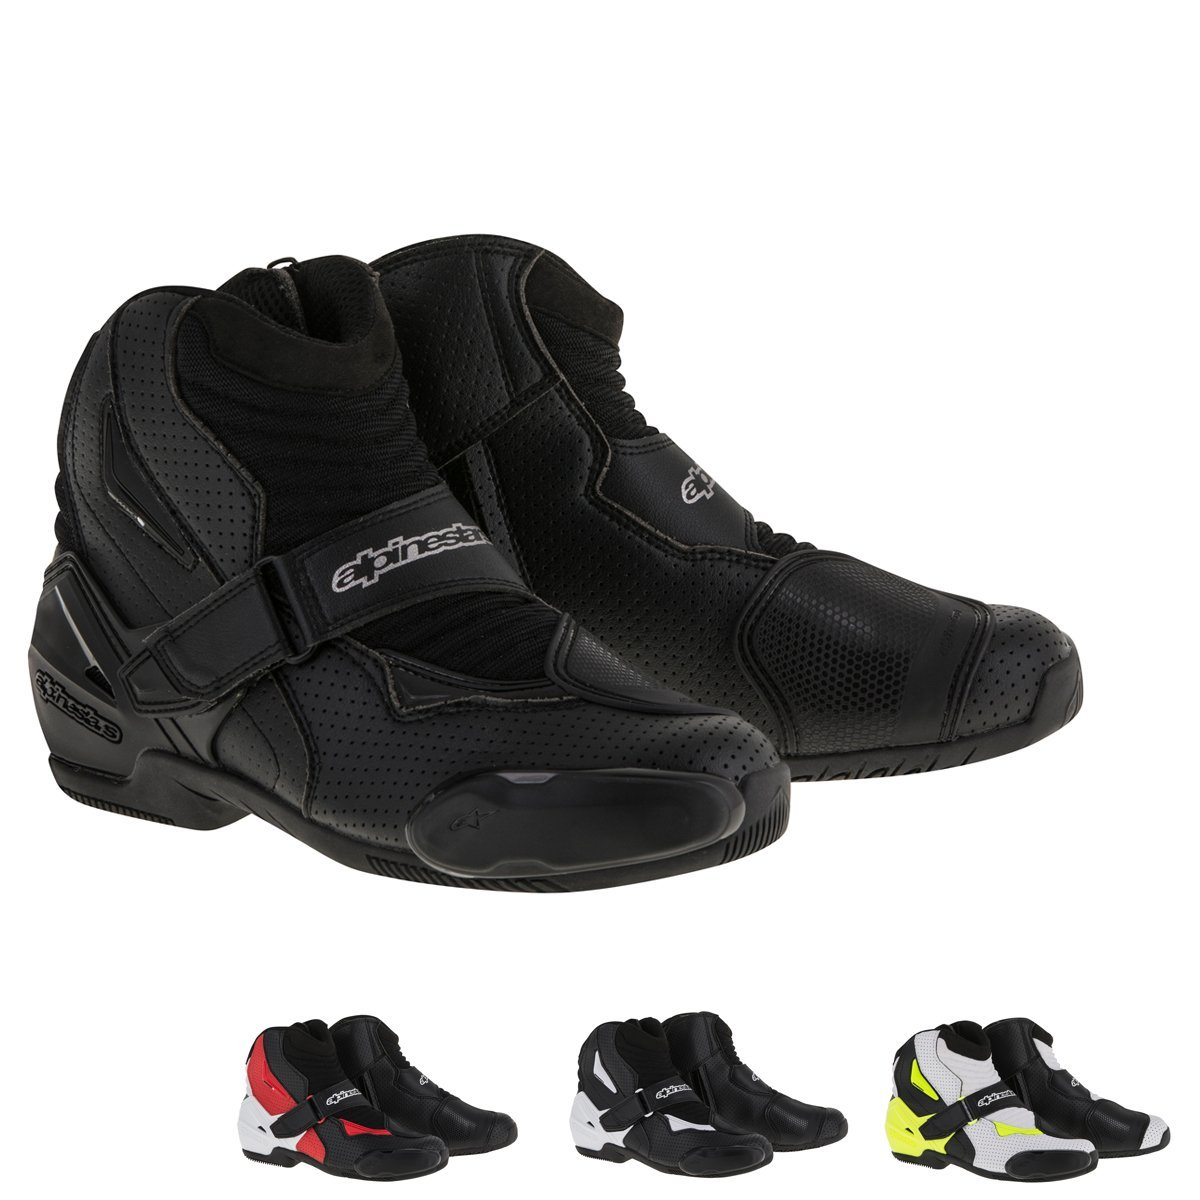 Alpinestars SMX-1R Vented Men's Street Motorcycle Shoes - Black/White/Red / 48 by Alpinestars